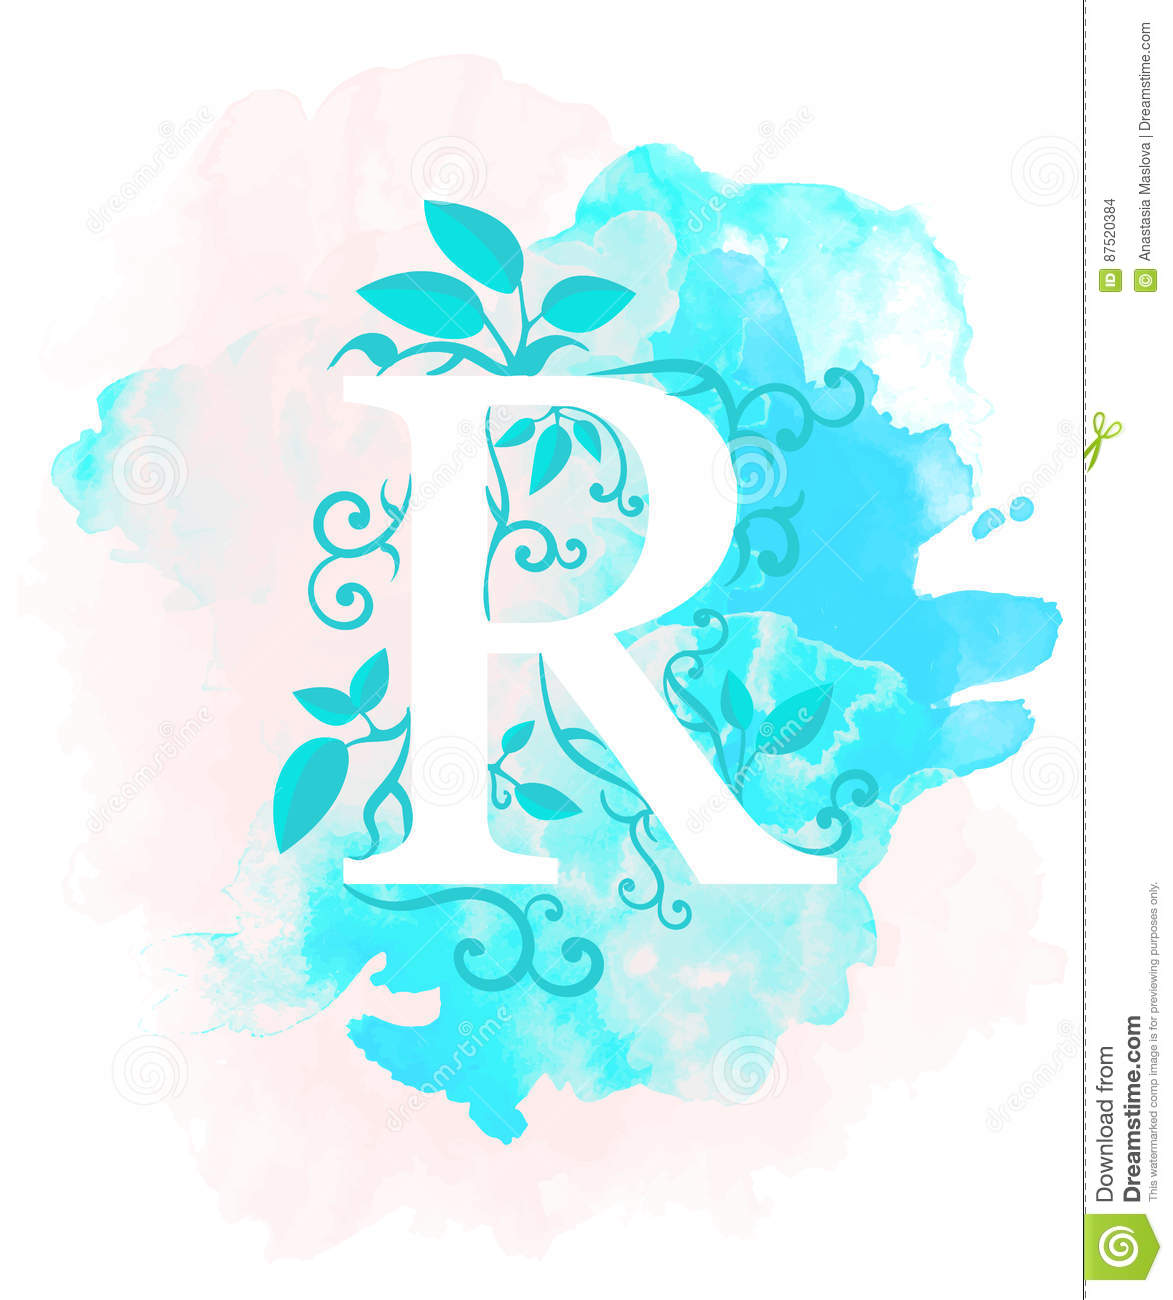 Download Watercolor Letter Calligraphy On Background Natural Elements Leaves Curls Design An Element For